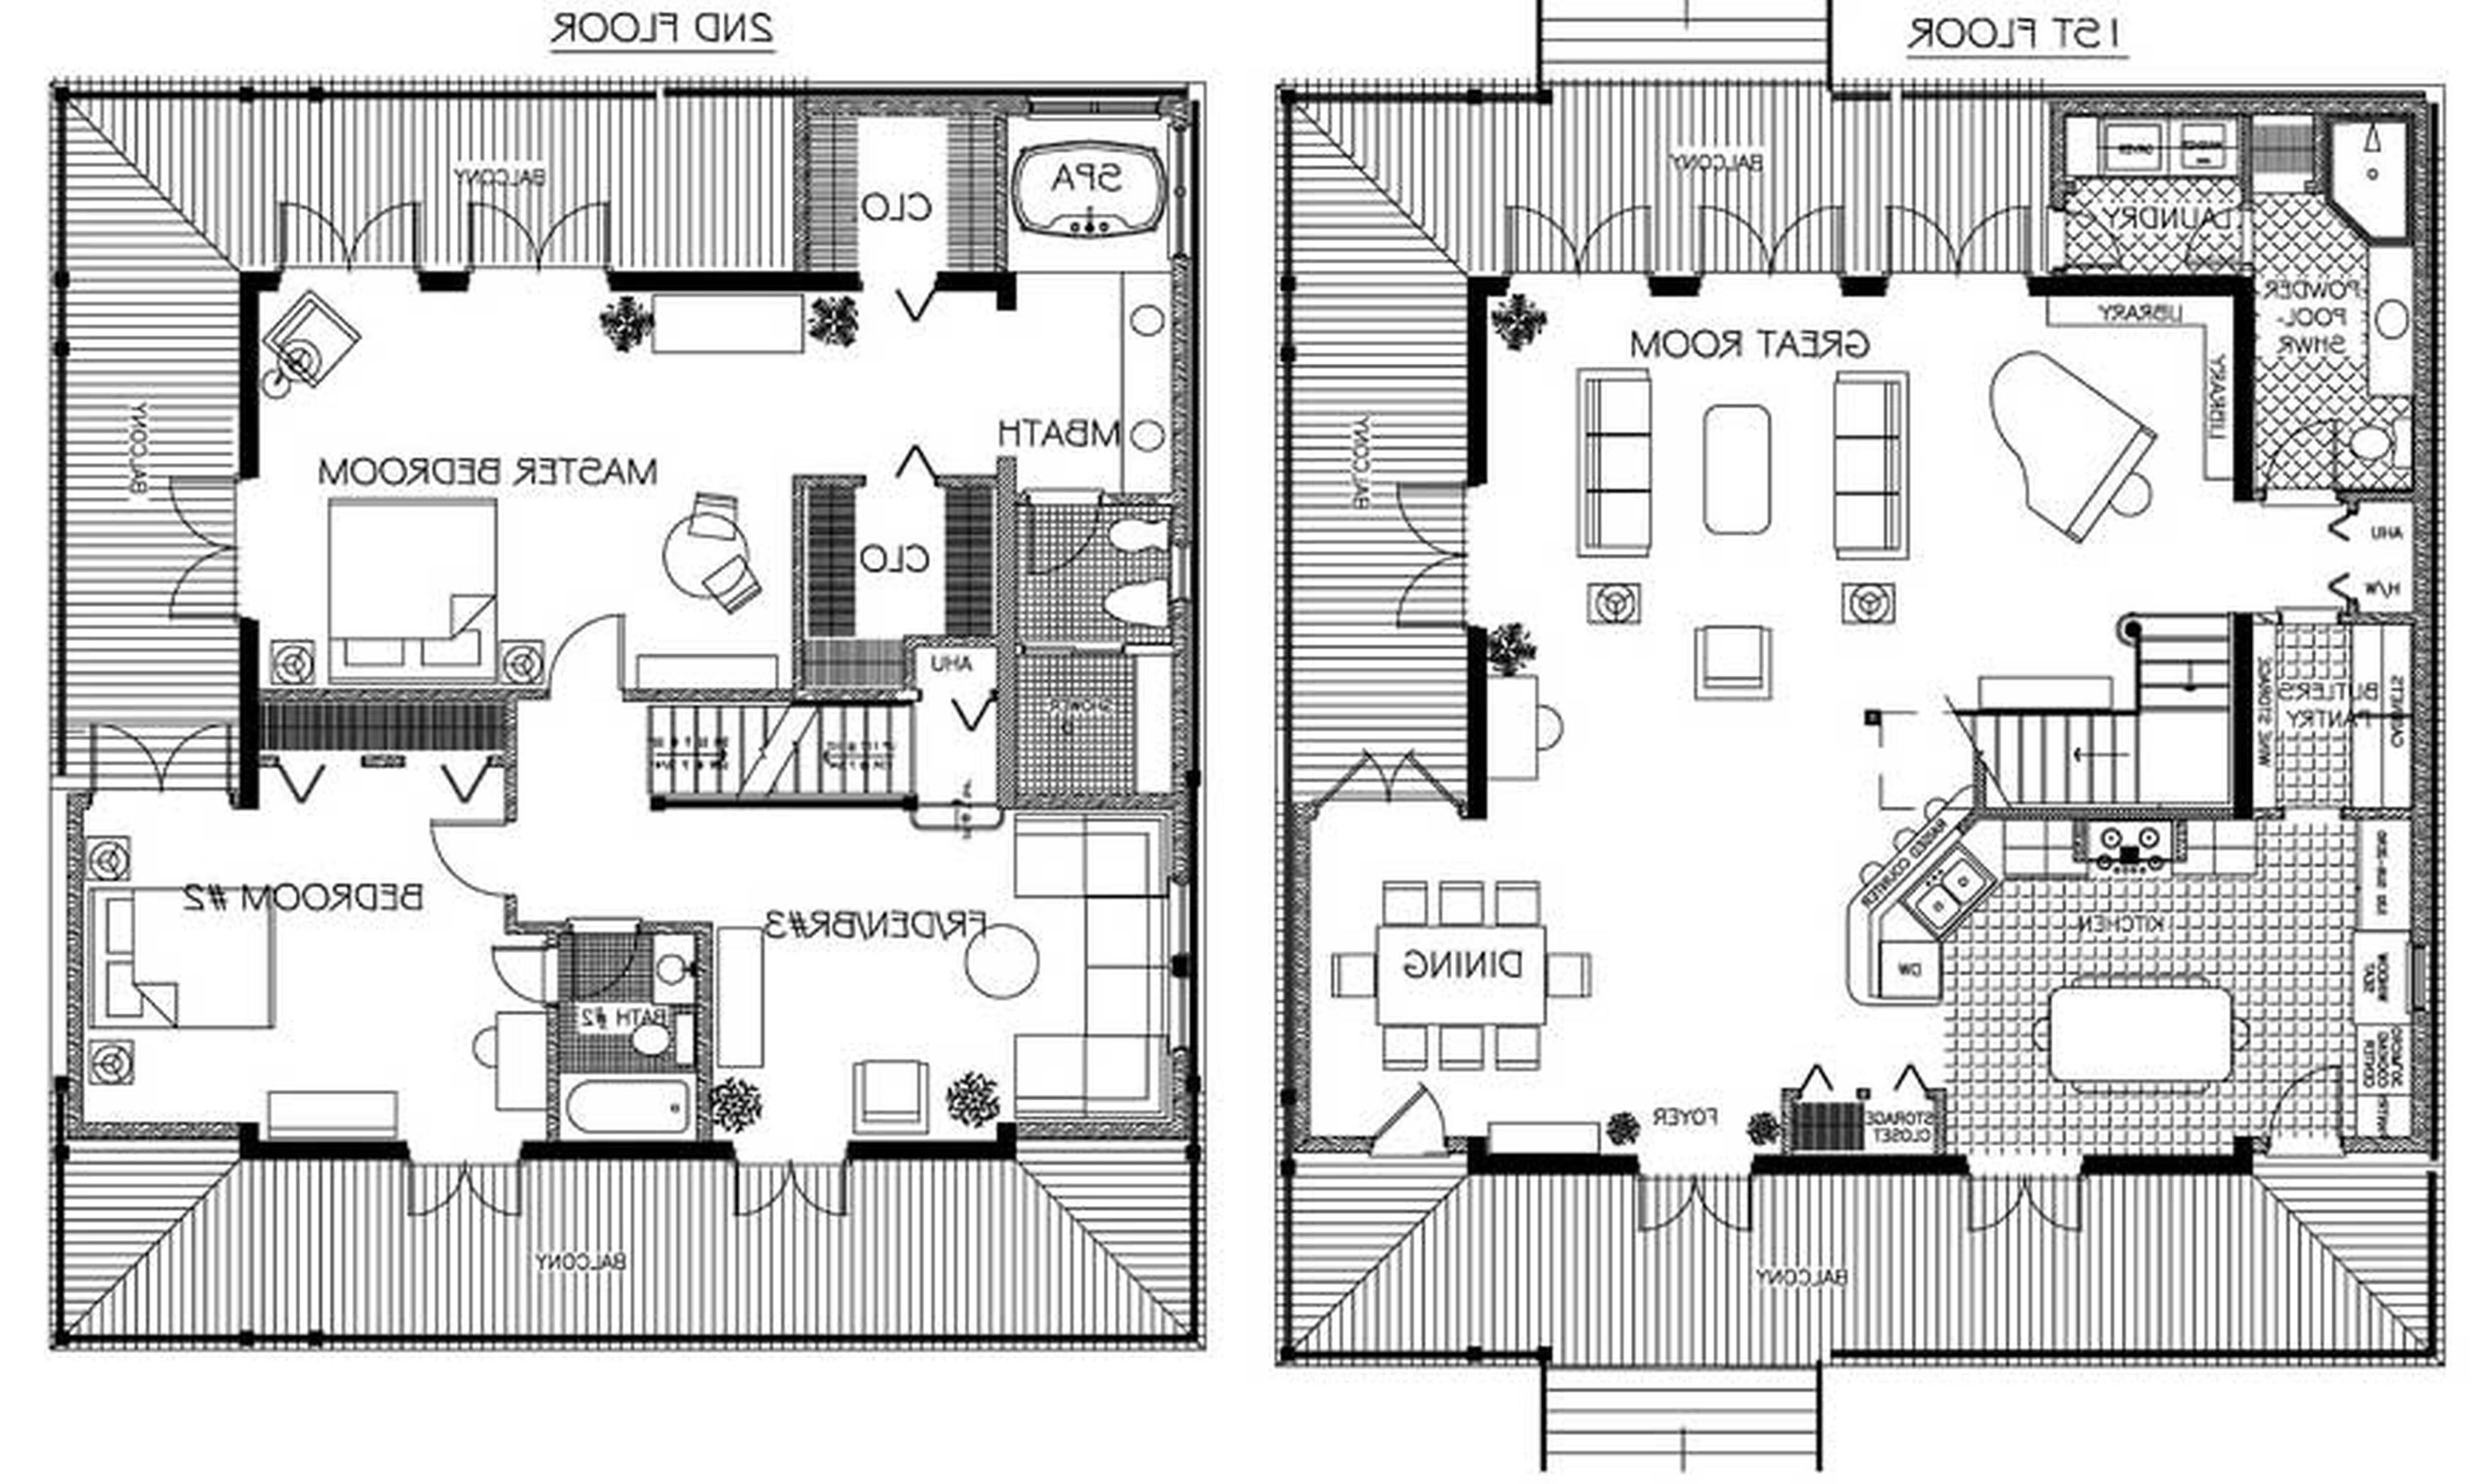 Traditional Japanese House Plans With Courtyard Unique Japanese Style House Plans New Japan Style House Japan House Design House Blueprints French House Plans